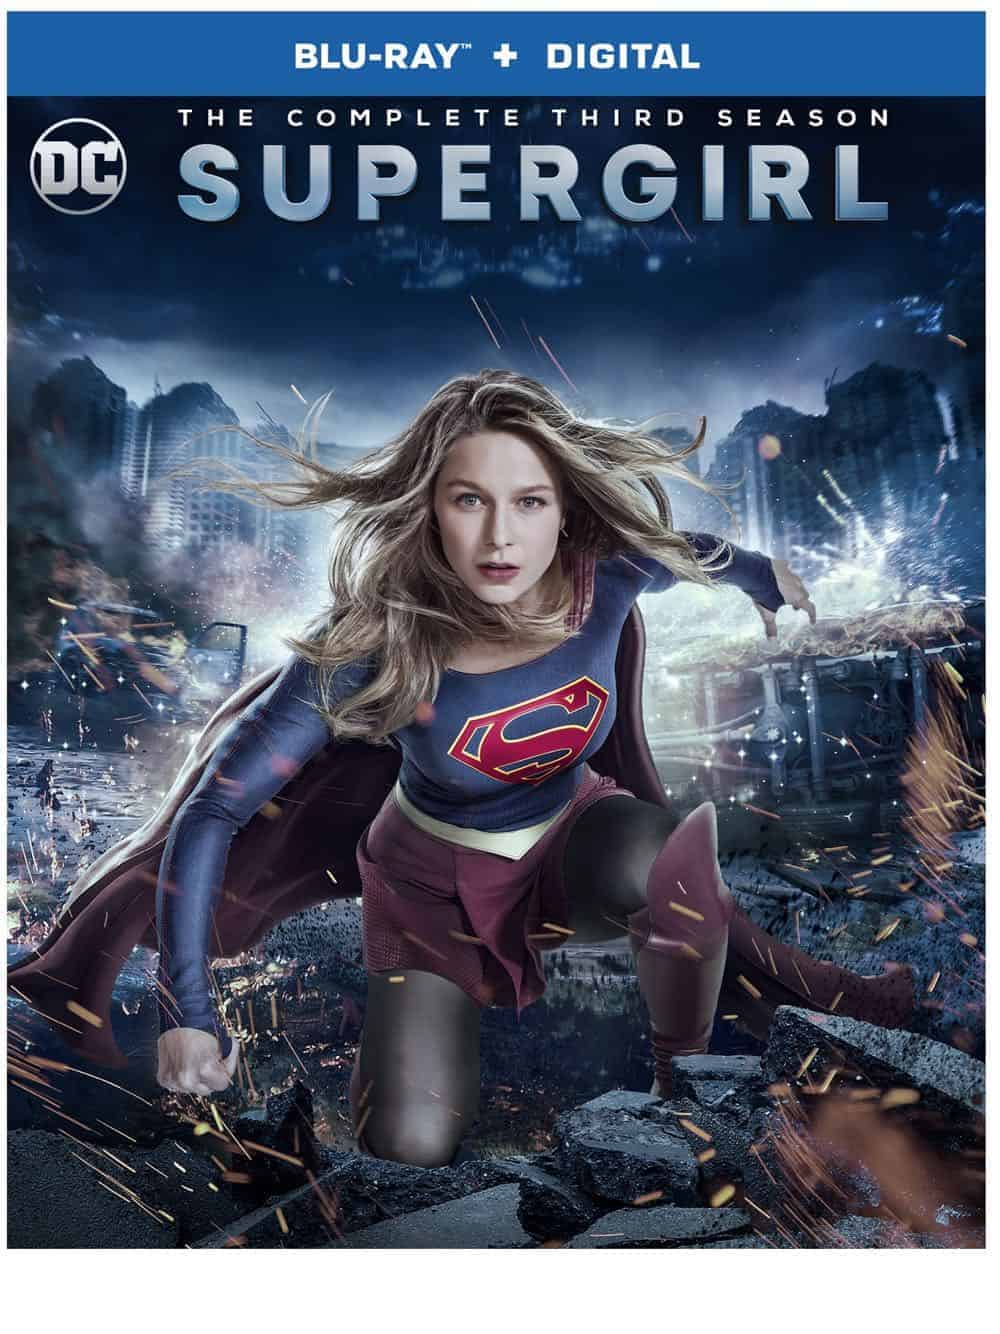 Supergirl Season 3 Blu-ray